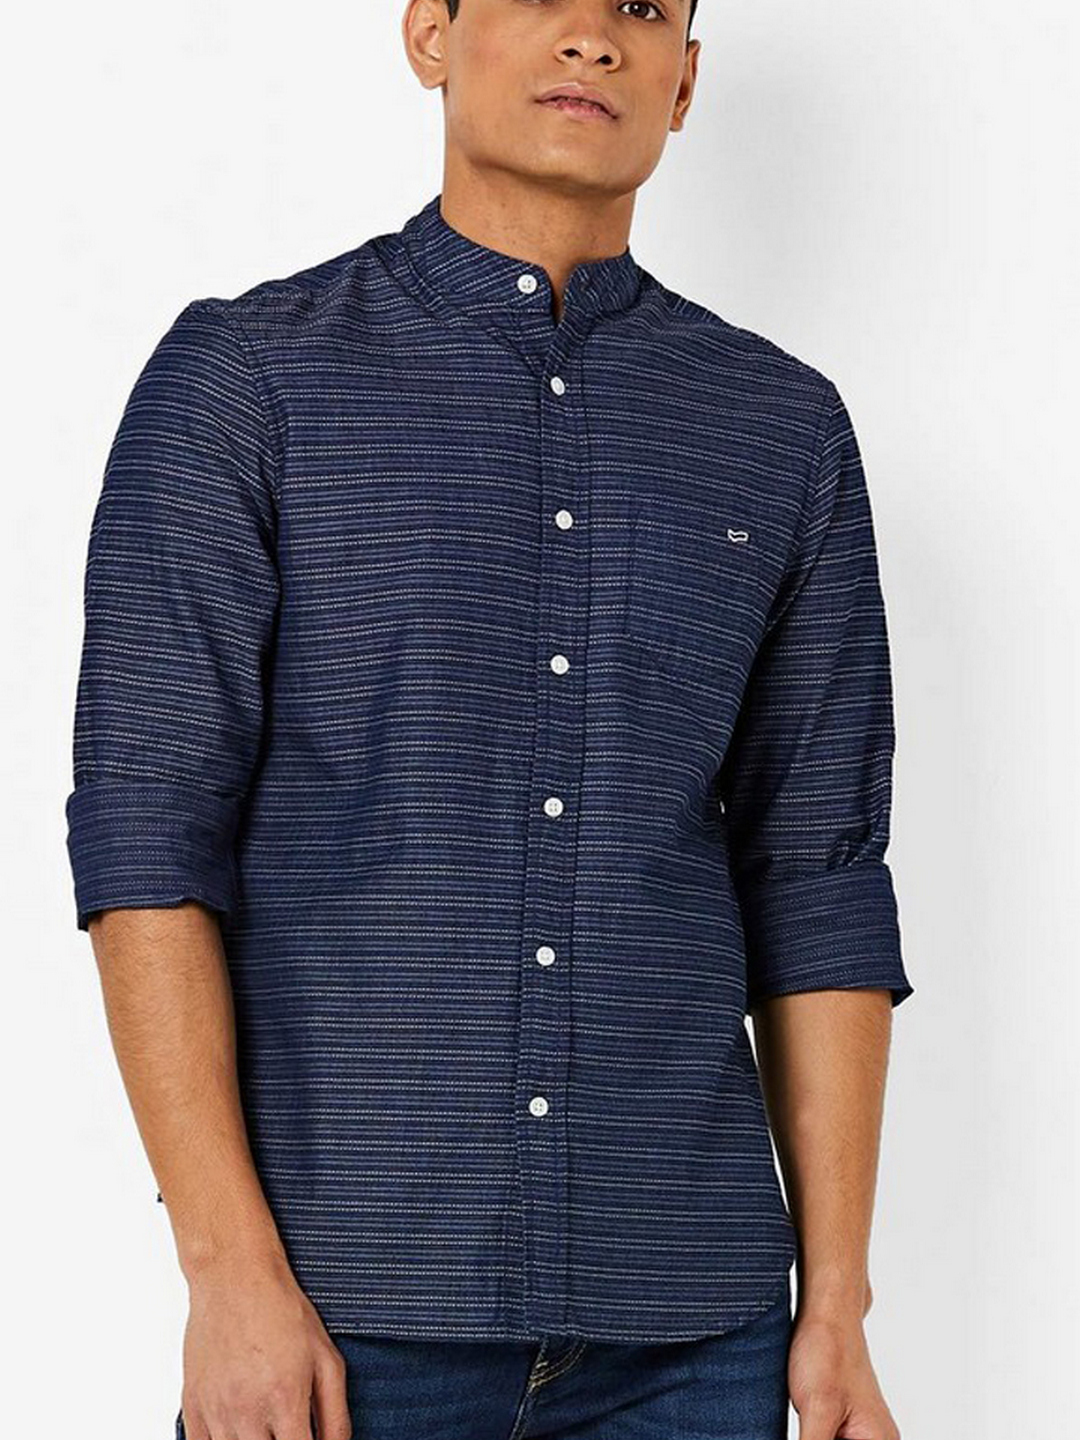 Men's Dyami S navy blue jacquard stripes shirt